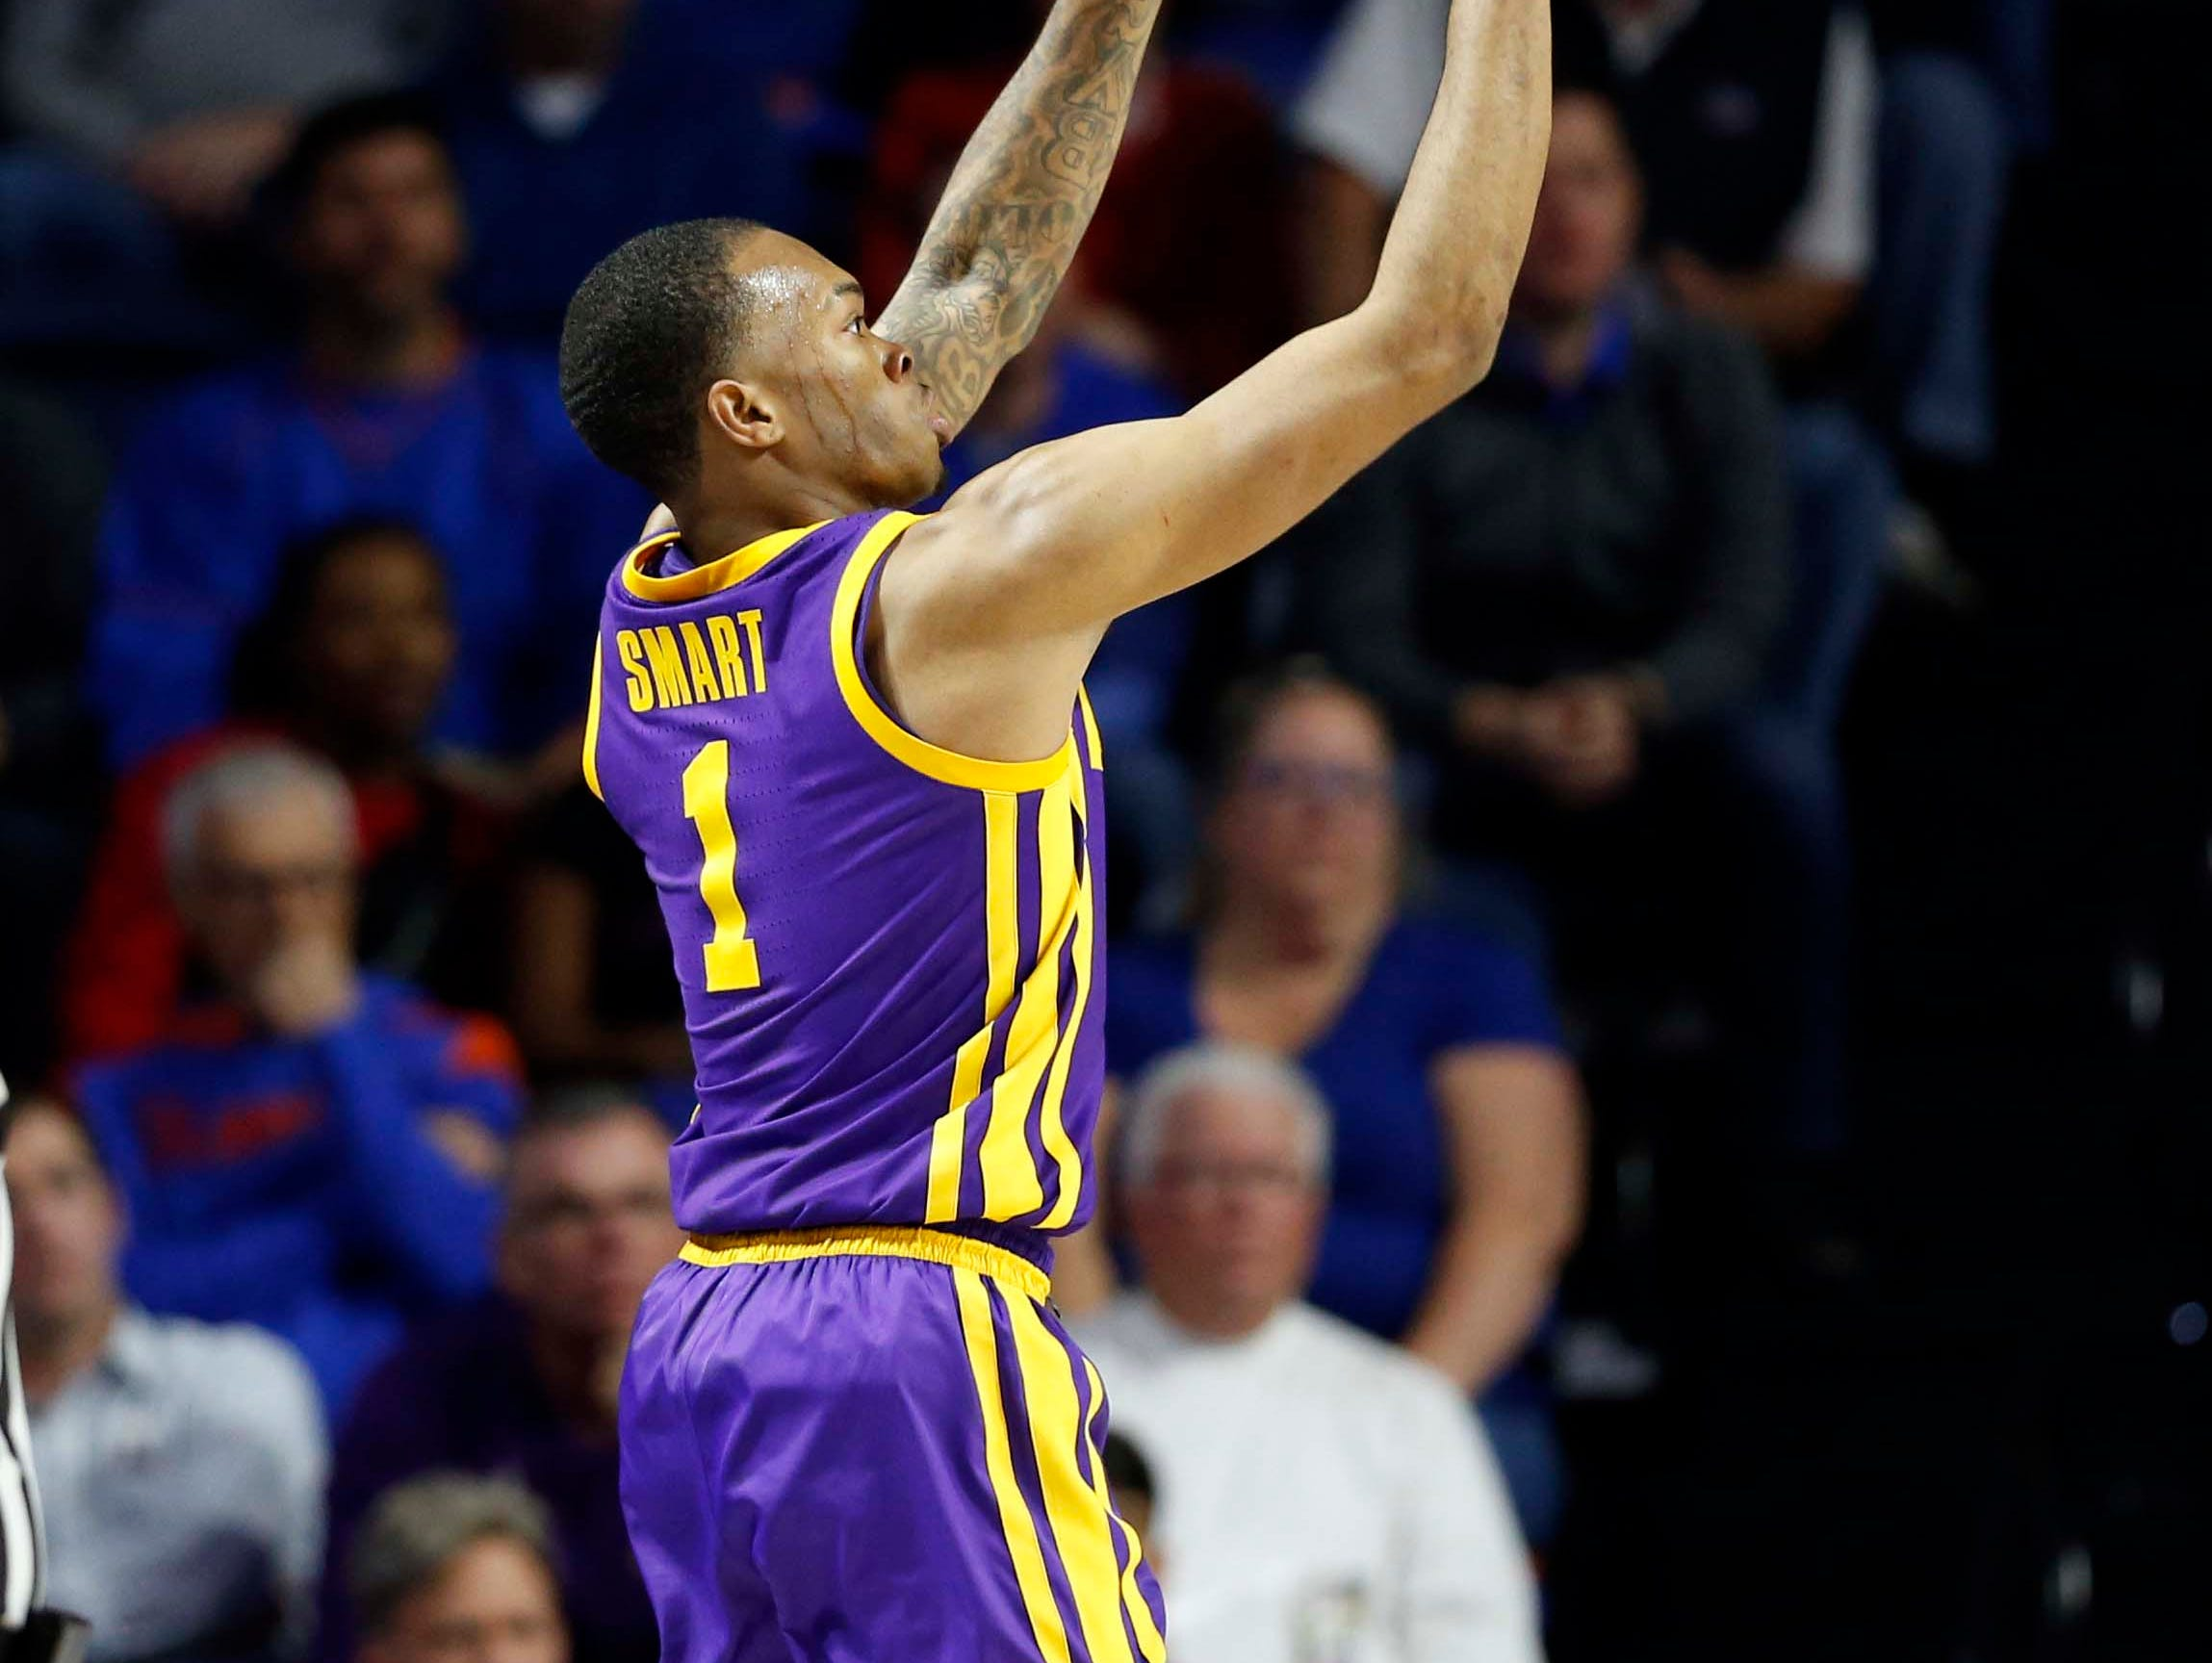 Mar 6, 2019; Gainesville, FL, USA; LSU Tigers guard Javonte Smart (1) makes a three pointer against the Florida Gators during the second half at Exactech Arena. Mandatory Credit: Kim Klement-USA TODAY Sports